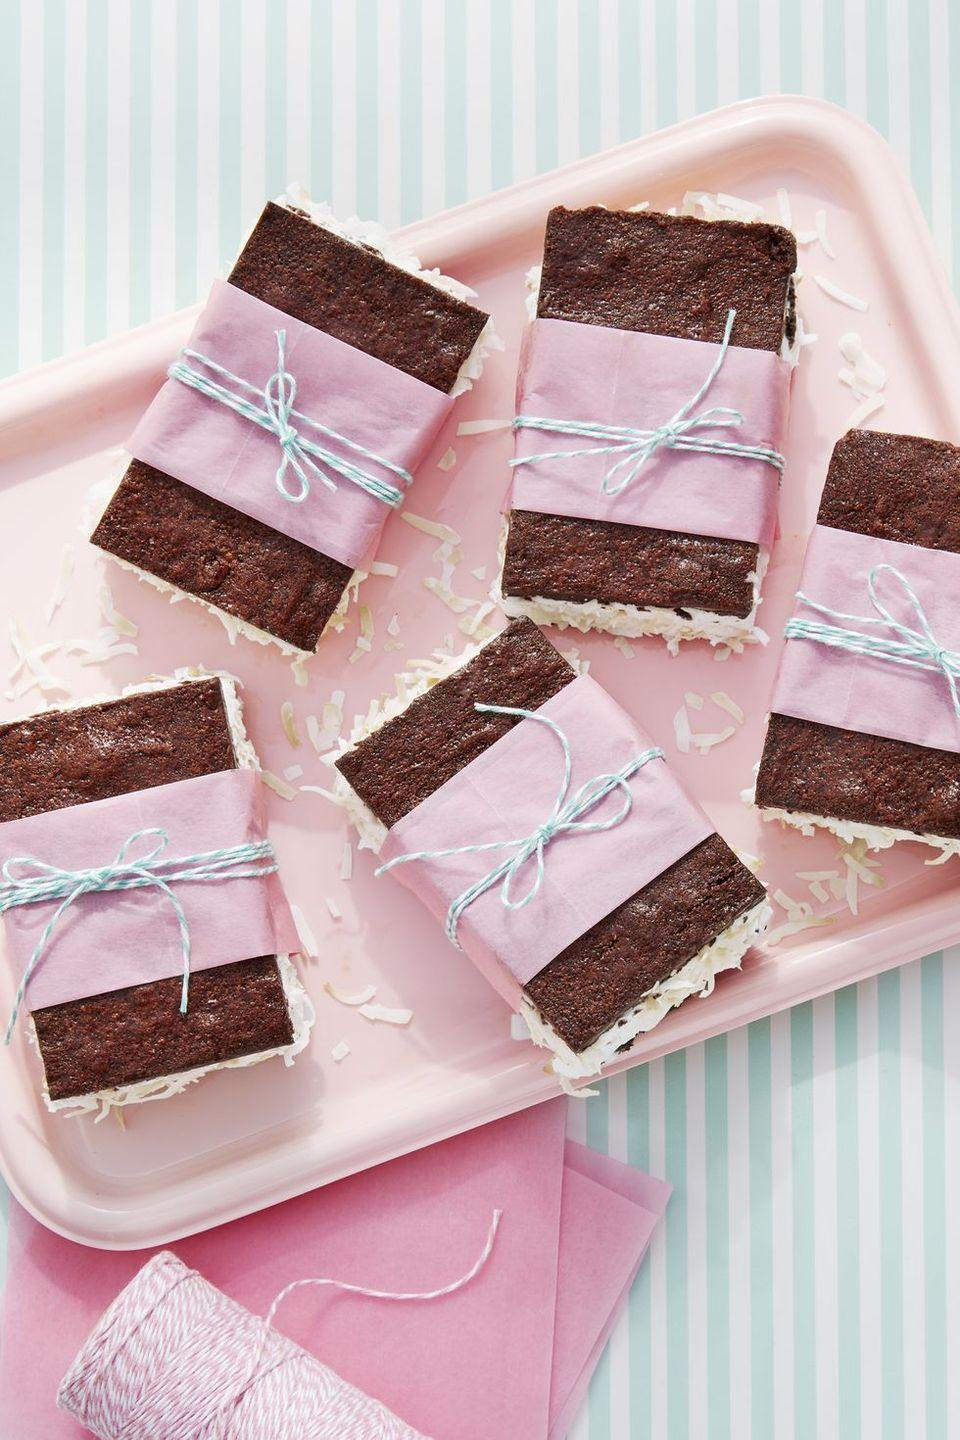 "<p>Coconut gelato is the star of these brownie bites.</p><p><strong><a href=""https://www.countryliving.com/food-drinks/a20747923/chewy-brownie-ice-cream-sandwiches-recipe/"" rel=""nofollow noopener"" target=""_blank"" data-ylk=""slk:Get the recipe"" class=""link rapid-noclick-resp"">Get the recipe</a>.</strong></p><p><strong><a class=""link rapid-noclick-resp"" href=""https://www.amazon.com/USA-Pan-Bakeware-Resistant-Aluminized/dp/B00282JL7G/?tag=syn-yahoo-20&ascsubtag=%5Bartid%7C10050.g.1138%5Bsrc%7Cyahoo-us"" rel=""nofollow noopener"" target=""_blank"" data-ylk=""slk:SHOP BAKING PANS"">SHOP BAKING PANS</a><br></strong></p>"